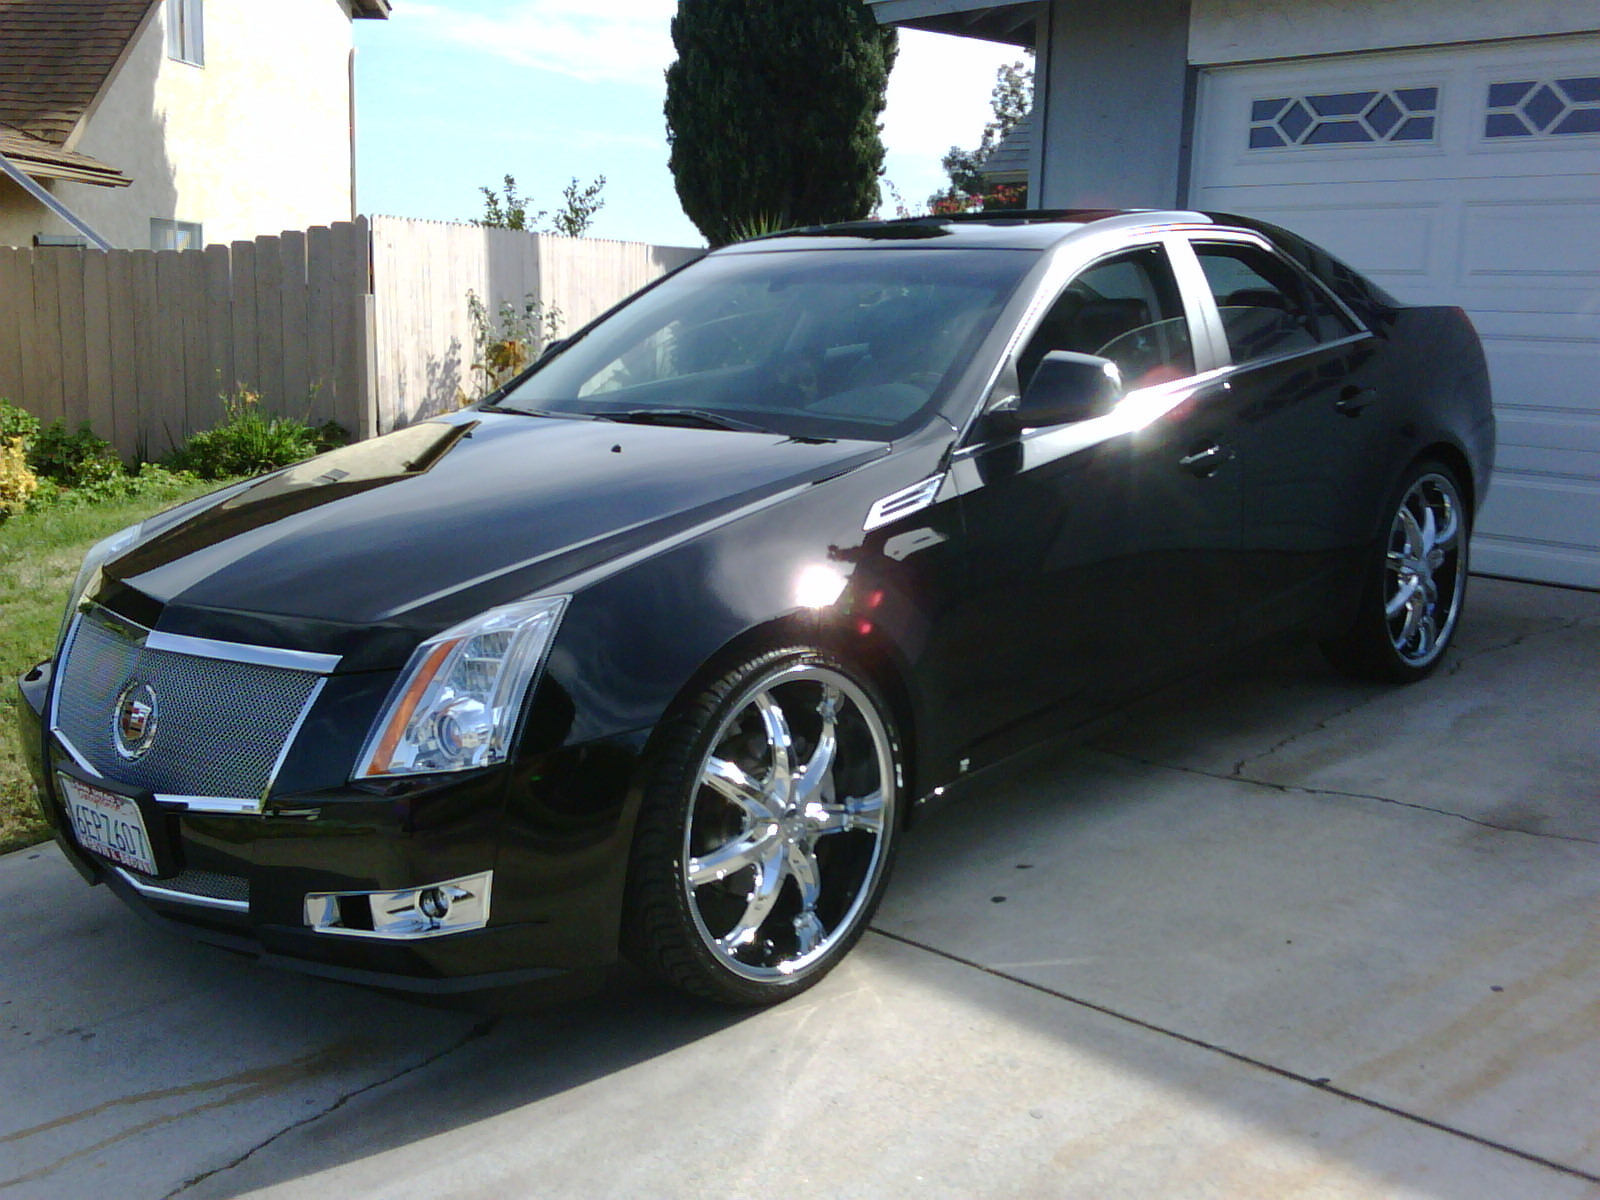 2009 Cadillac Cts Photos, Informations, Articles - BestCarMag.com